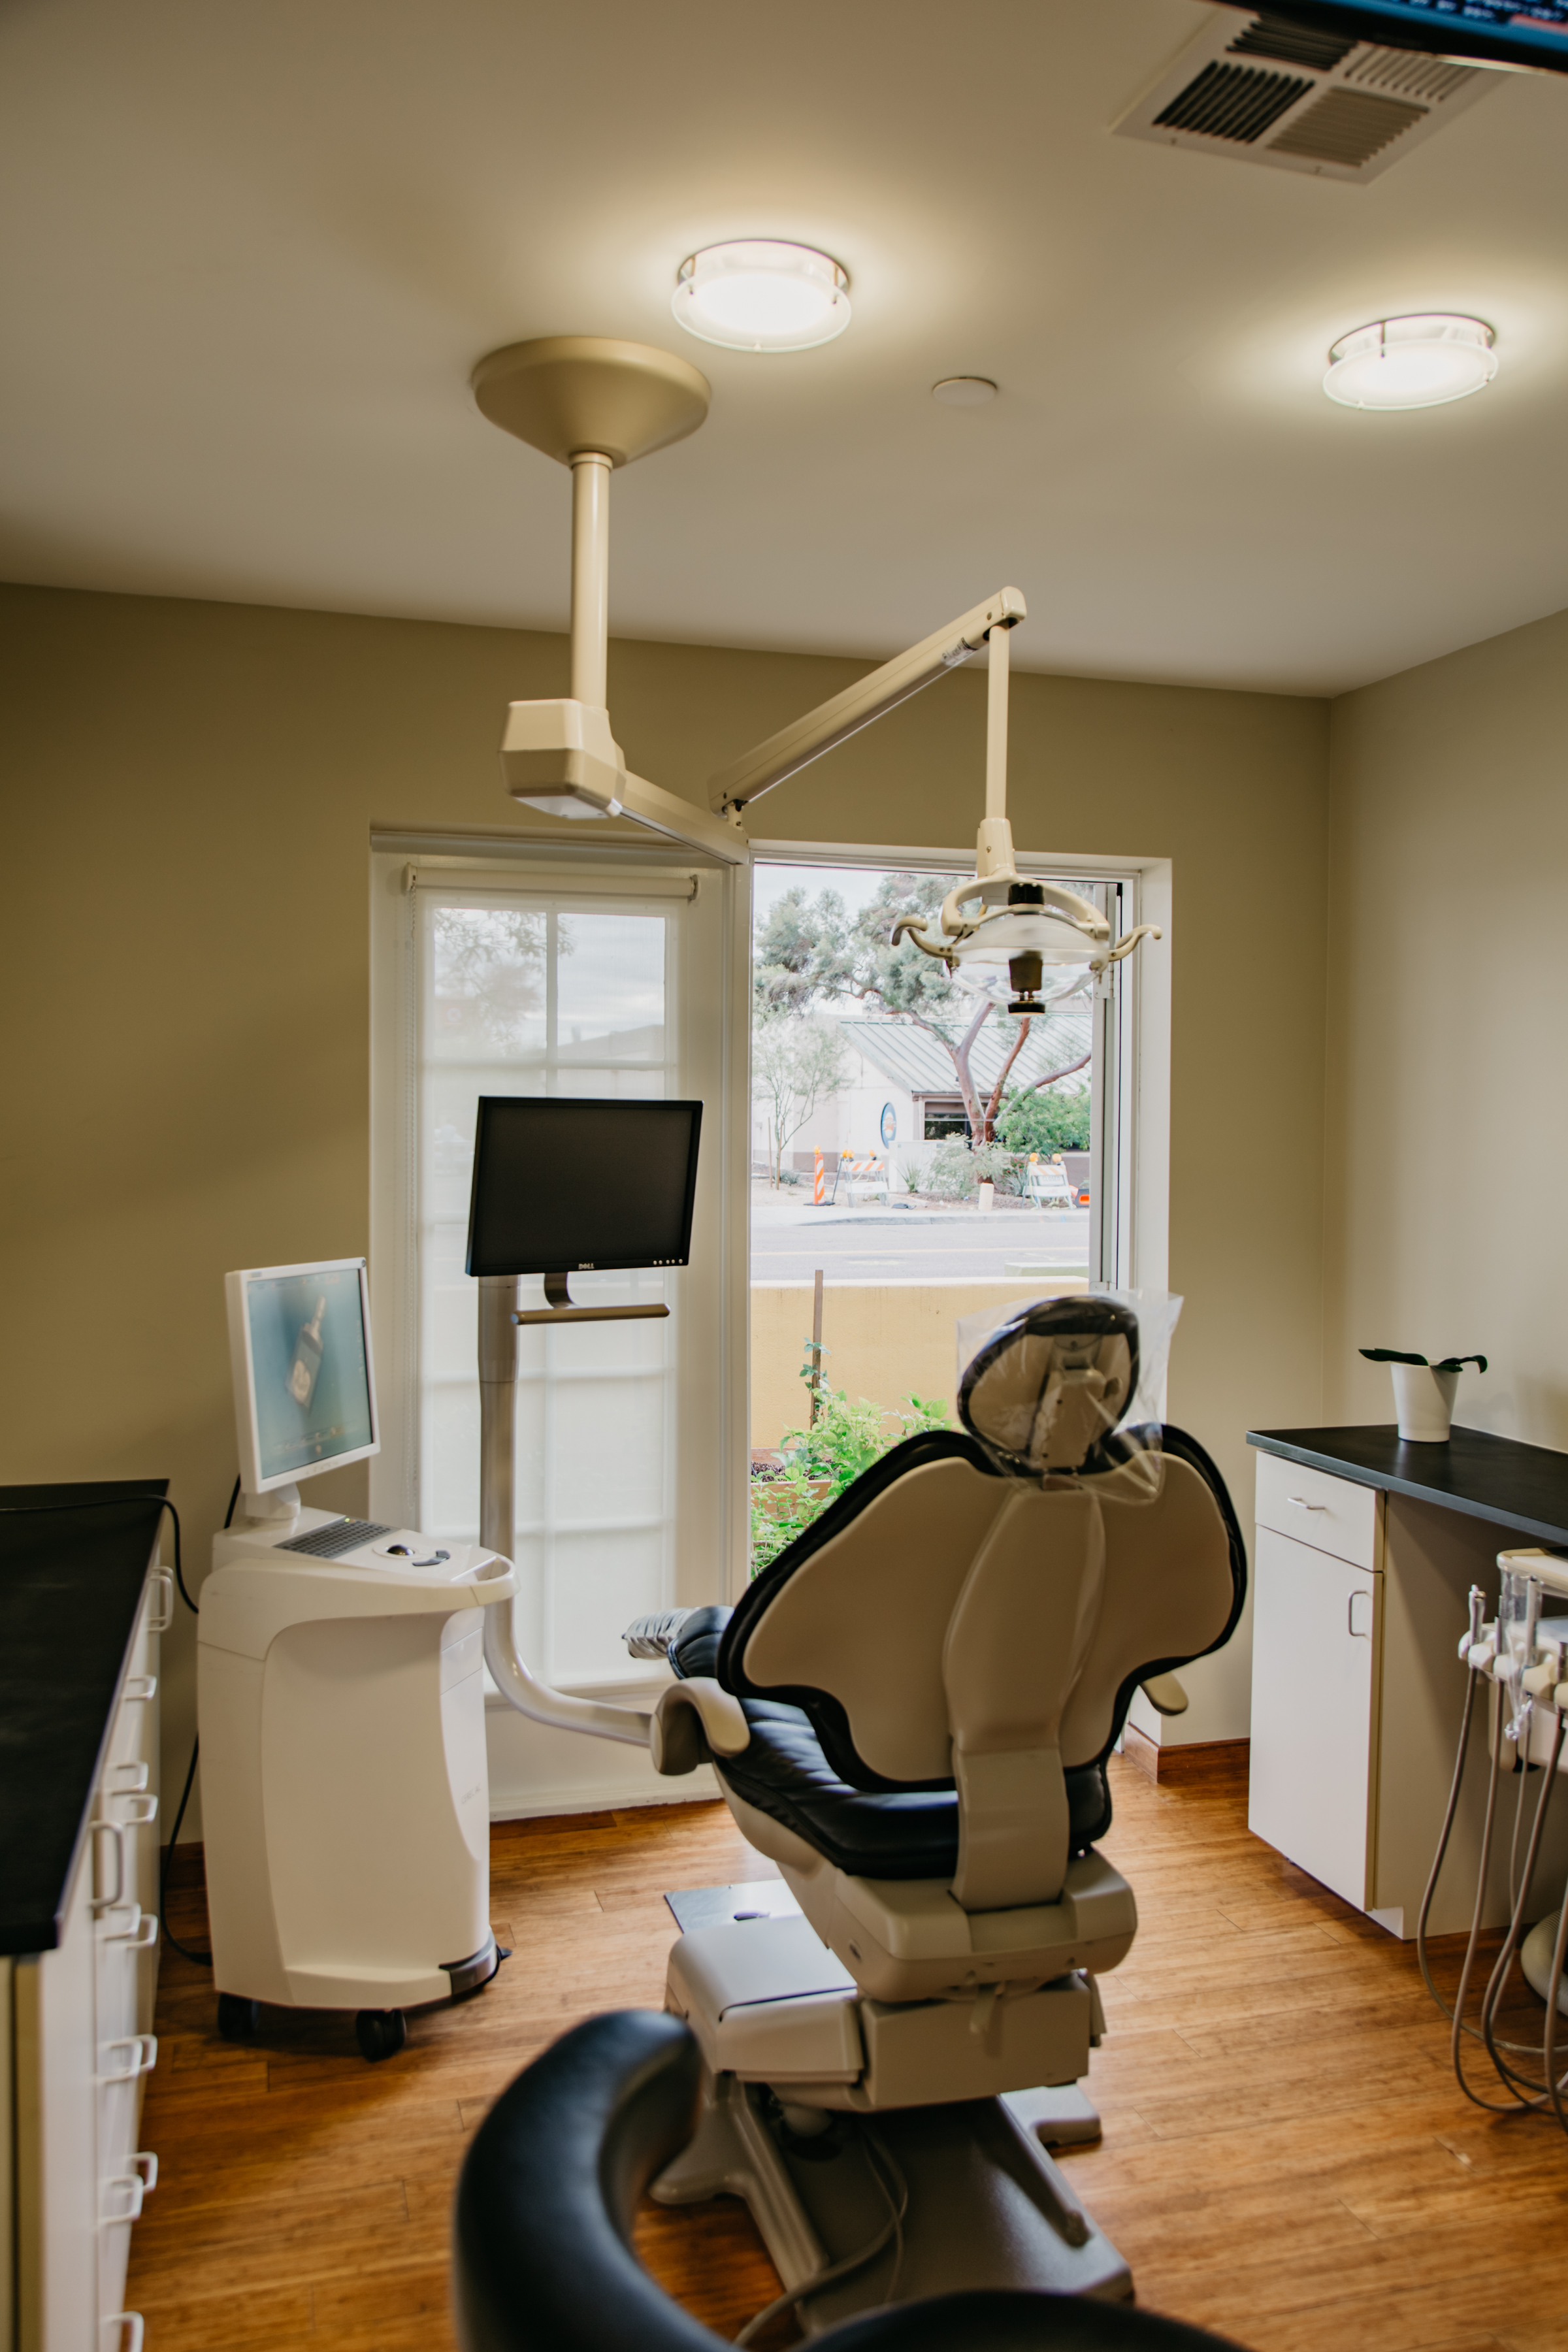 TimChow_SimplyDentistry_Full_034.jpg